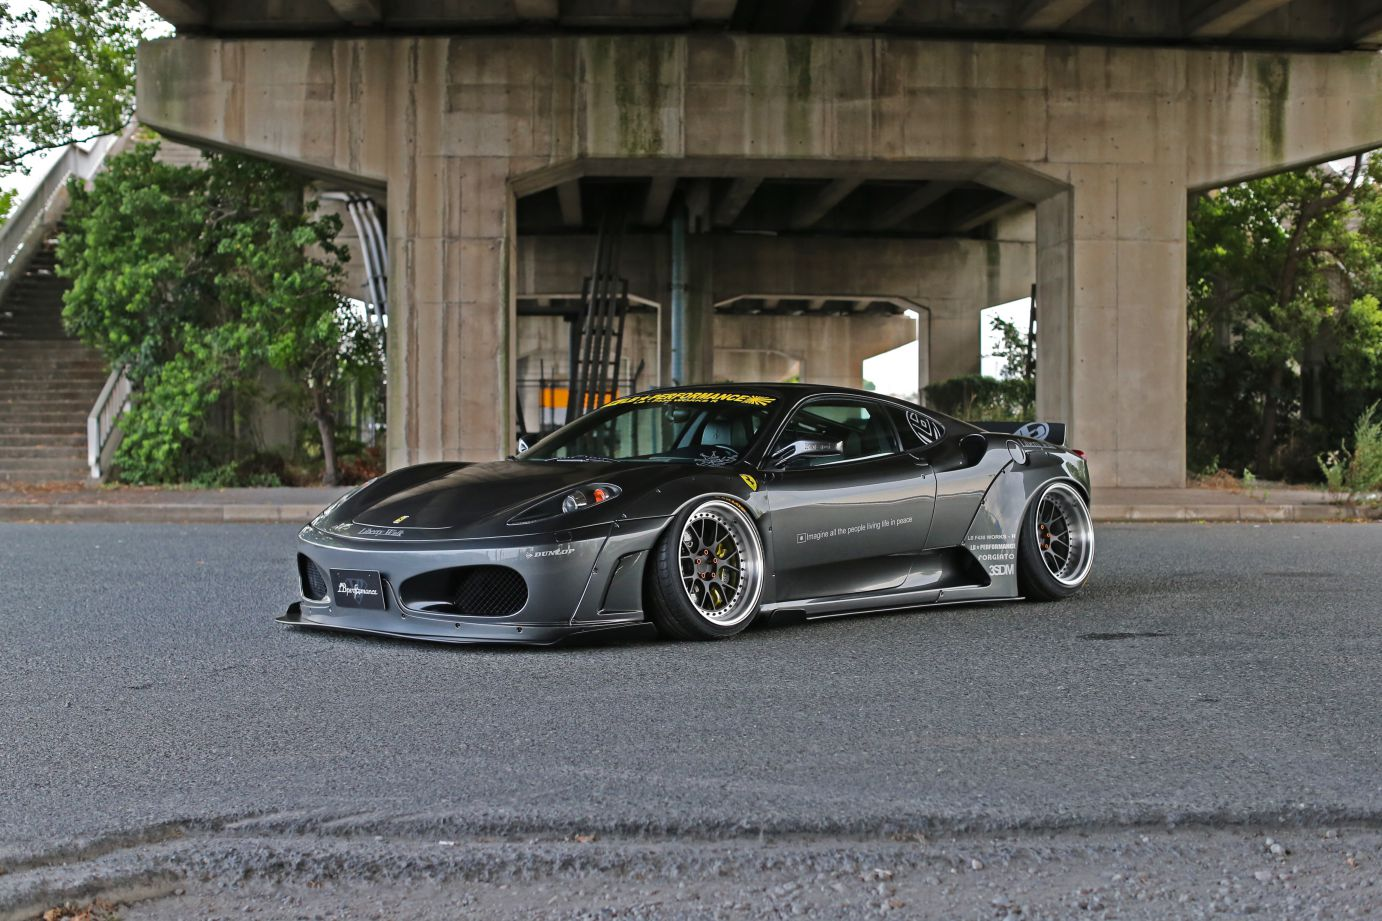 IMG_0754_compressed LB-WORKS F430